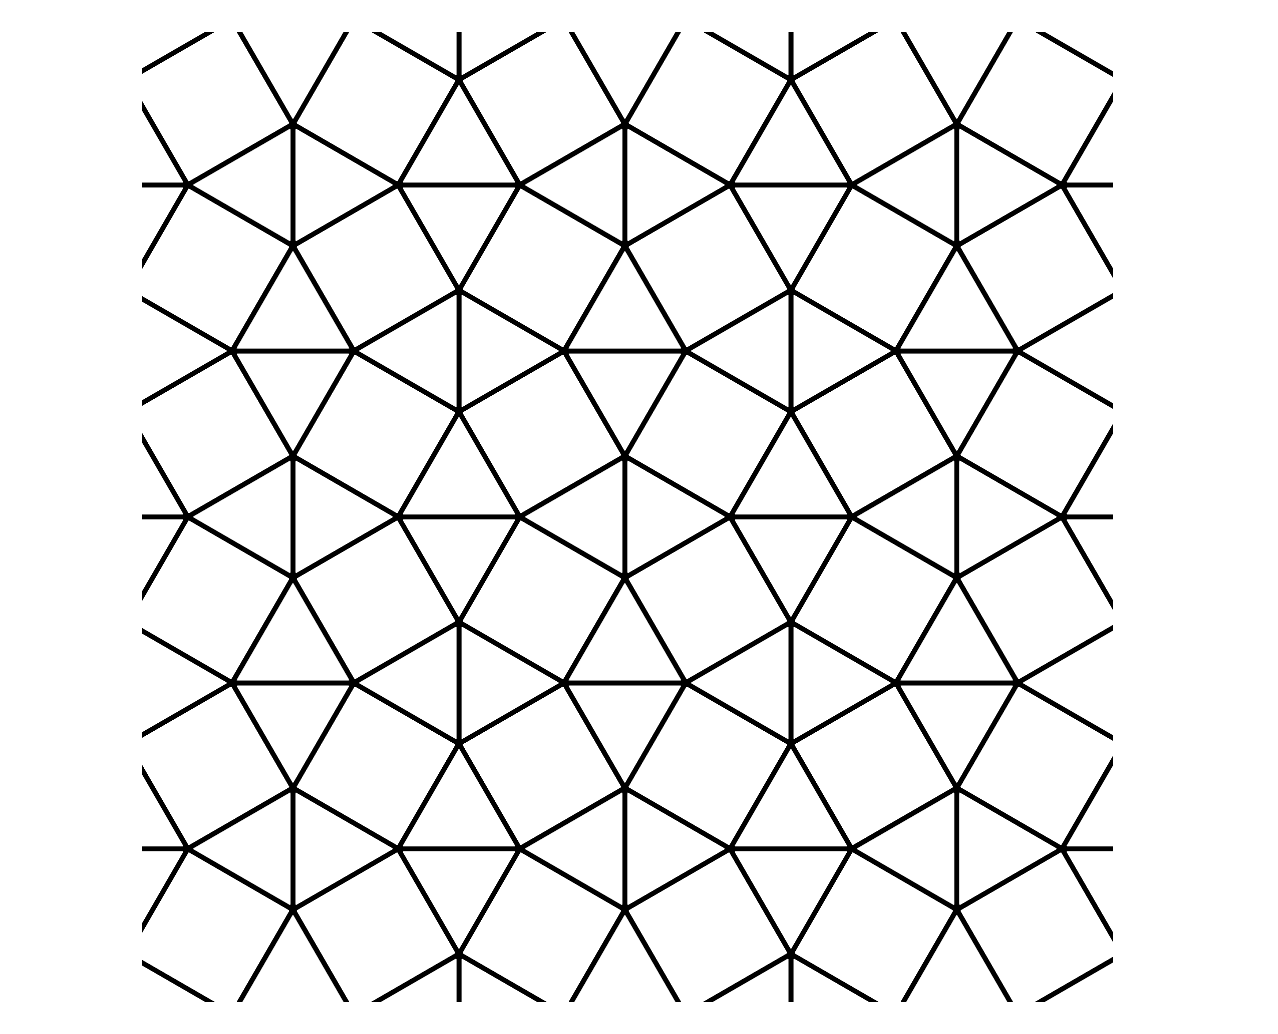 Worksheet Tessellation Worksheets To Color free tessellations coloring pages az tessellation page for kids